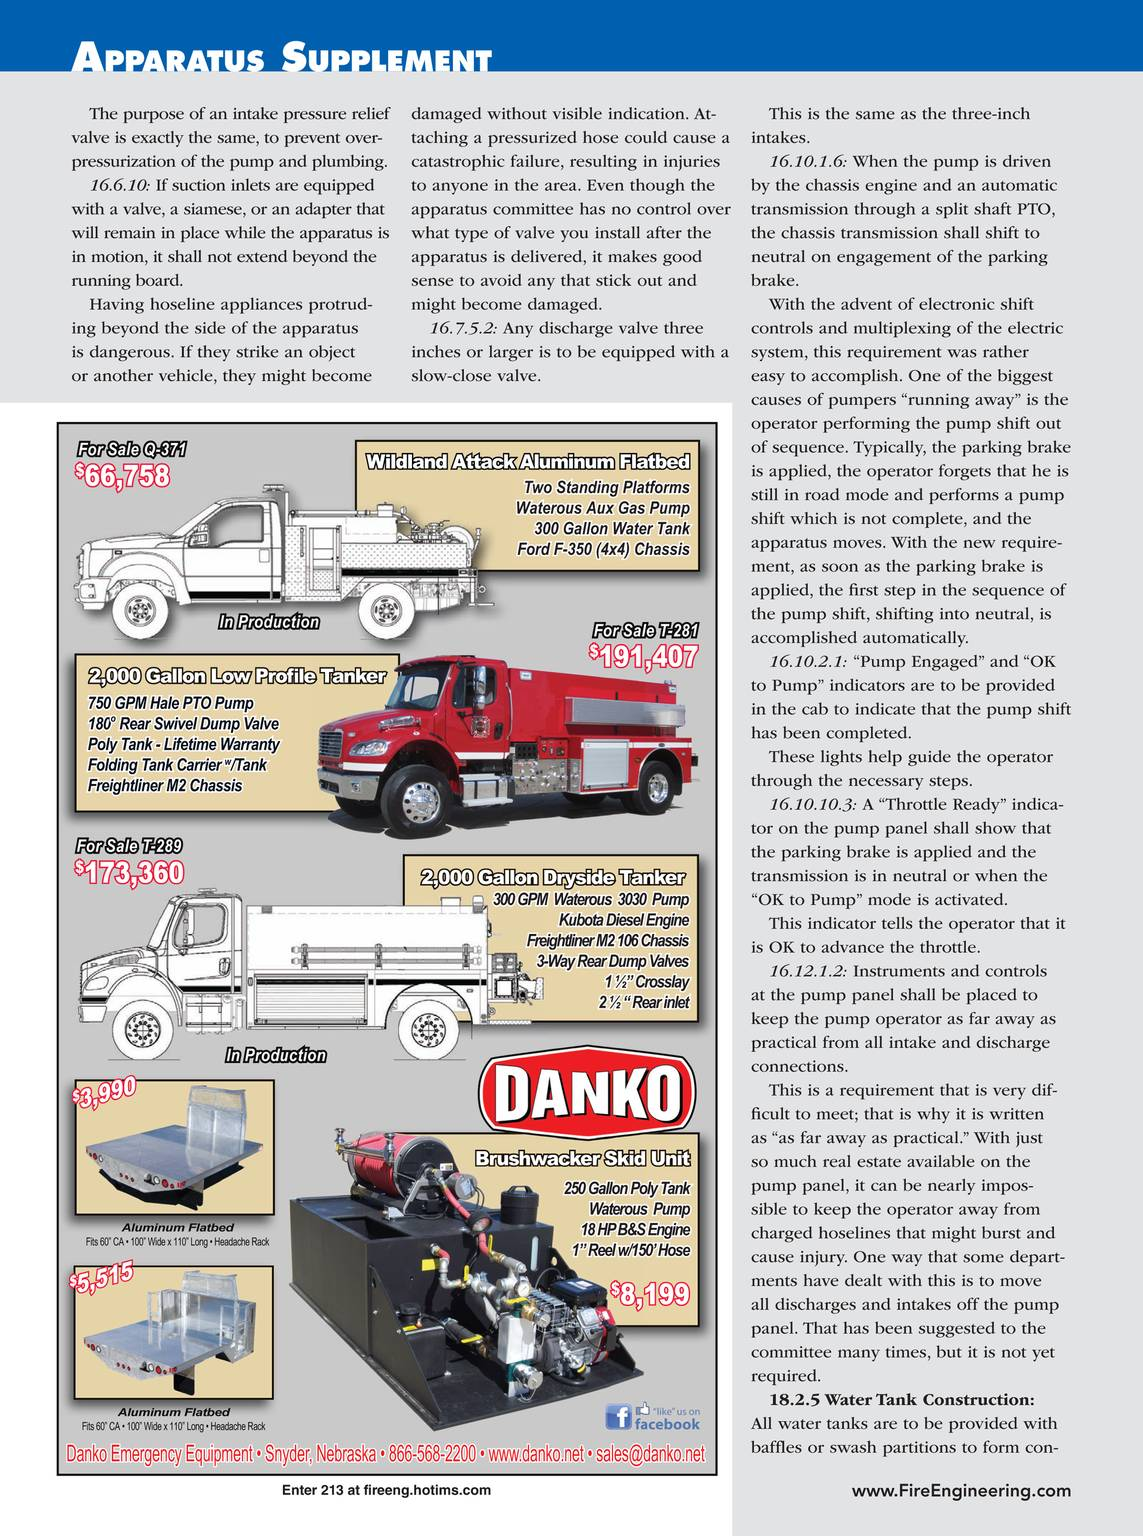 Fire Engineering - June 2013 - page FA22